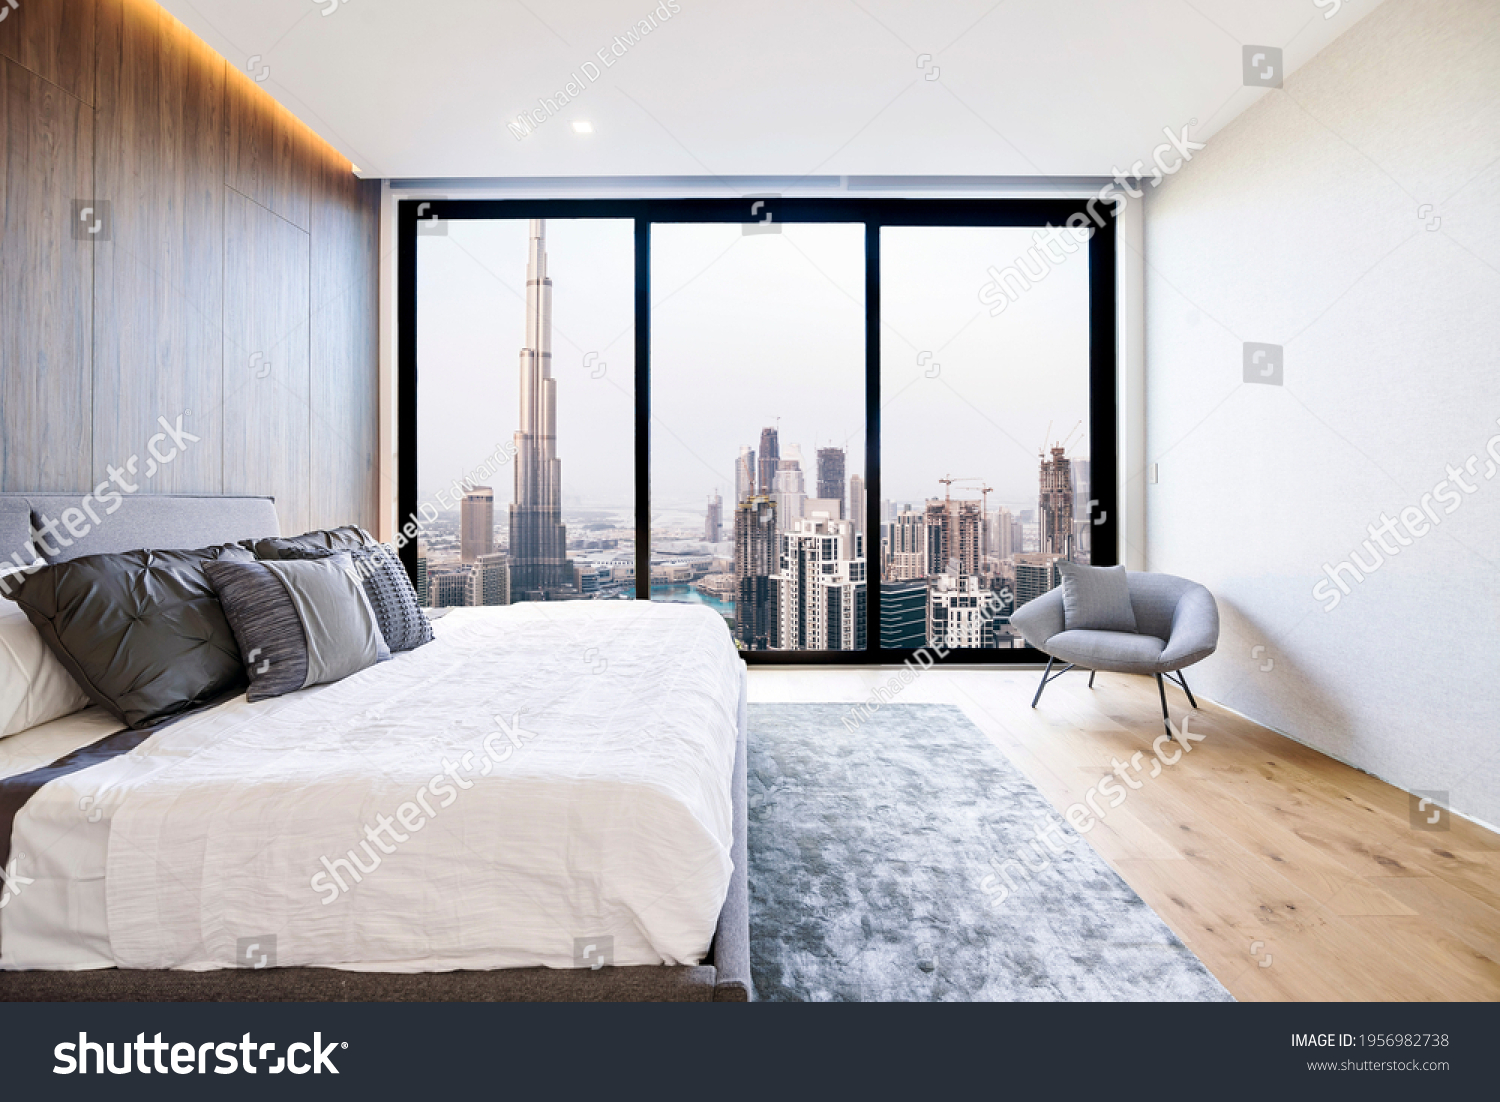 Modern and luxurious bedroom with white ceiling and wood accents with views of Burj Khalifa and downtown Dubai skyline. Condo or Hotel accomodation. #1956982738